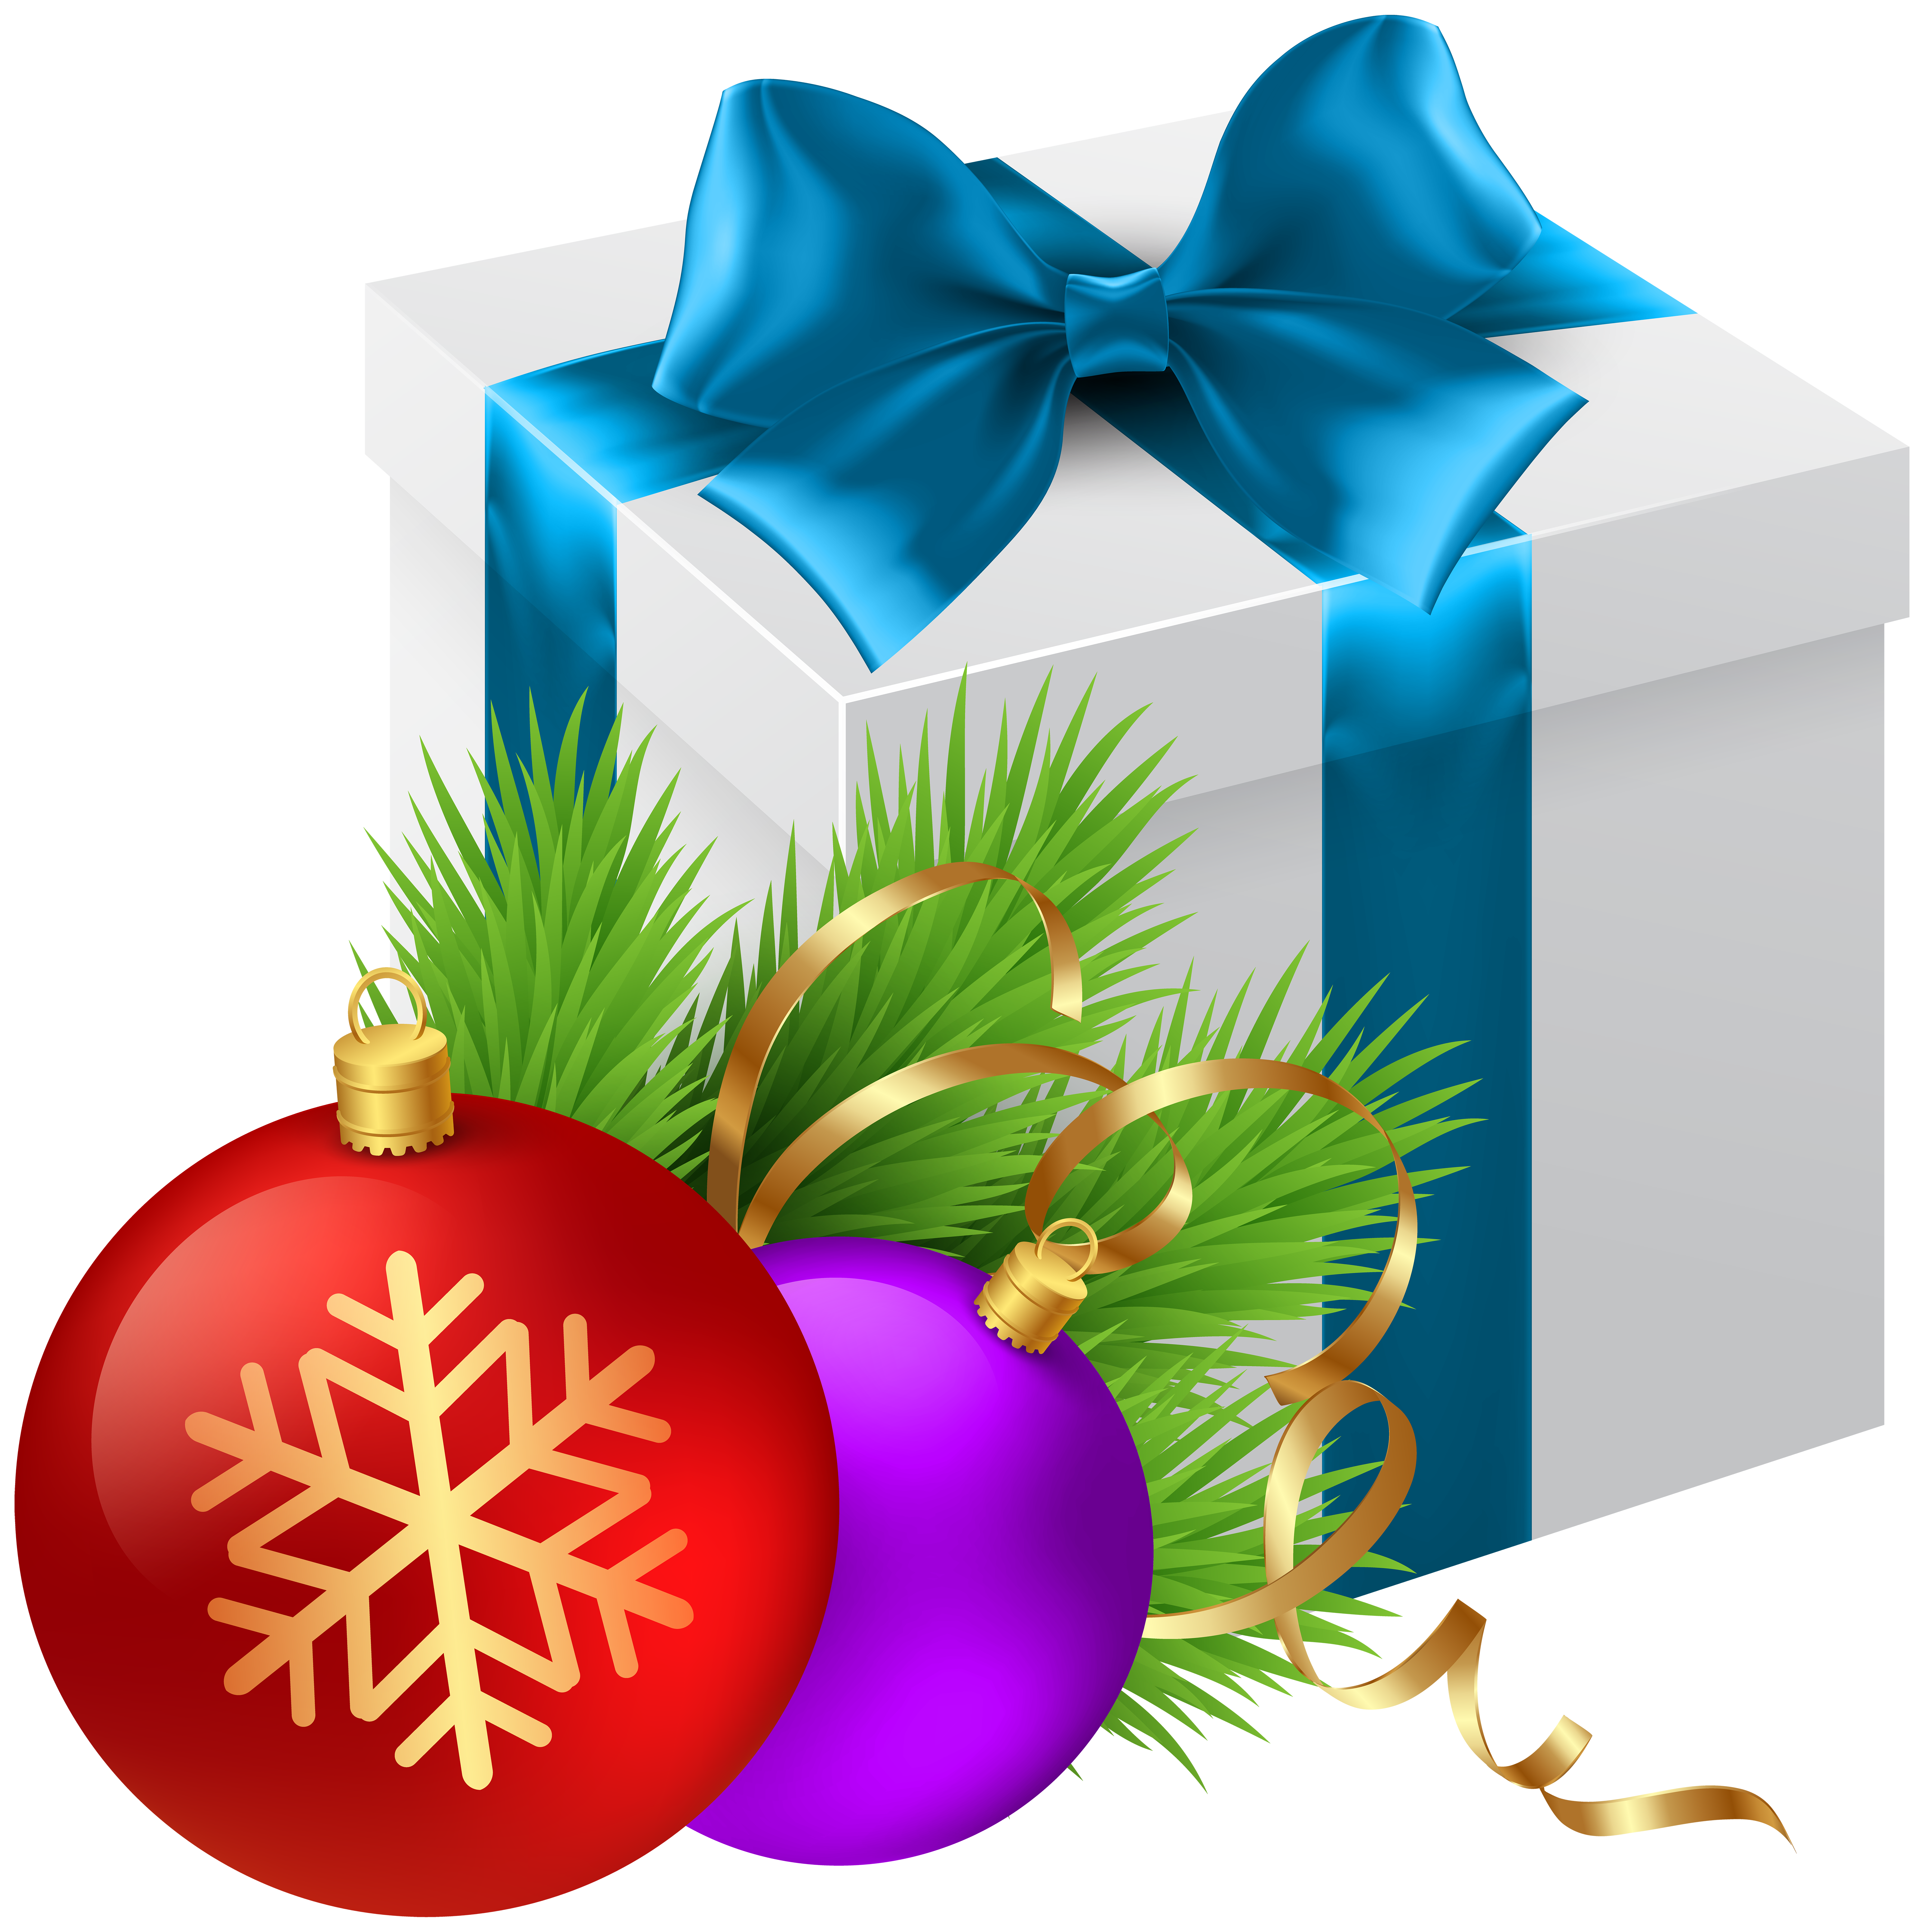 Christmas Gift Transparent Png Clip Art Image Gallery Yopriceville High Quality Images And Transparent Png Free Clipa Photo Frame Gift Clip Art Art Images